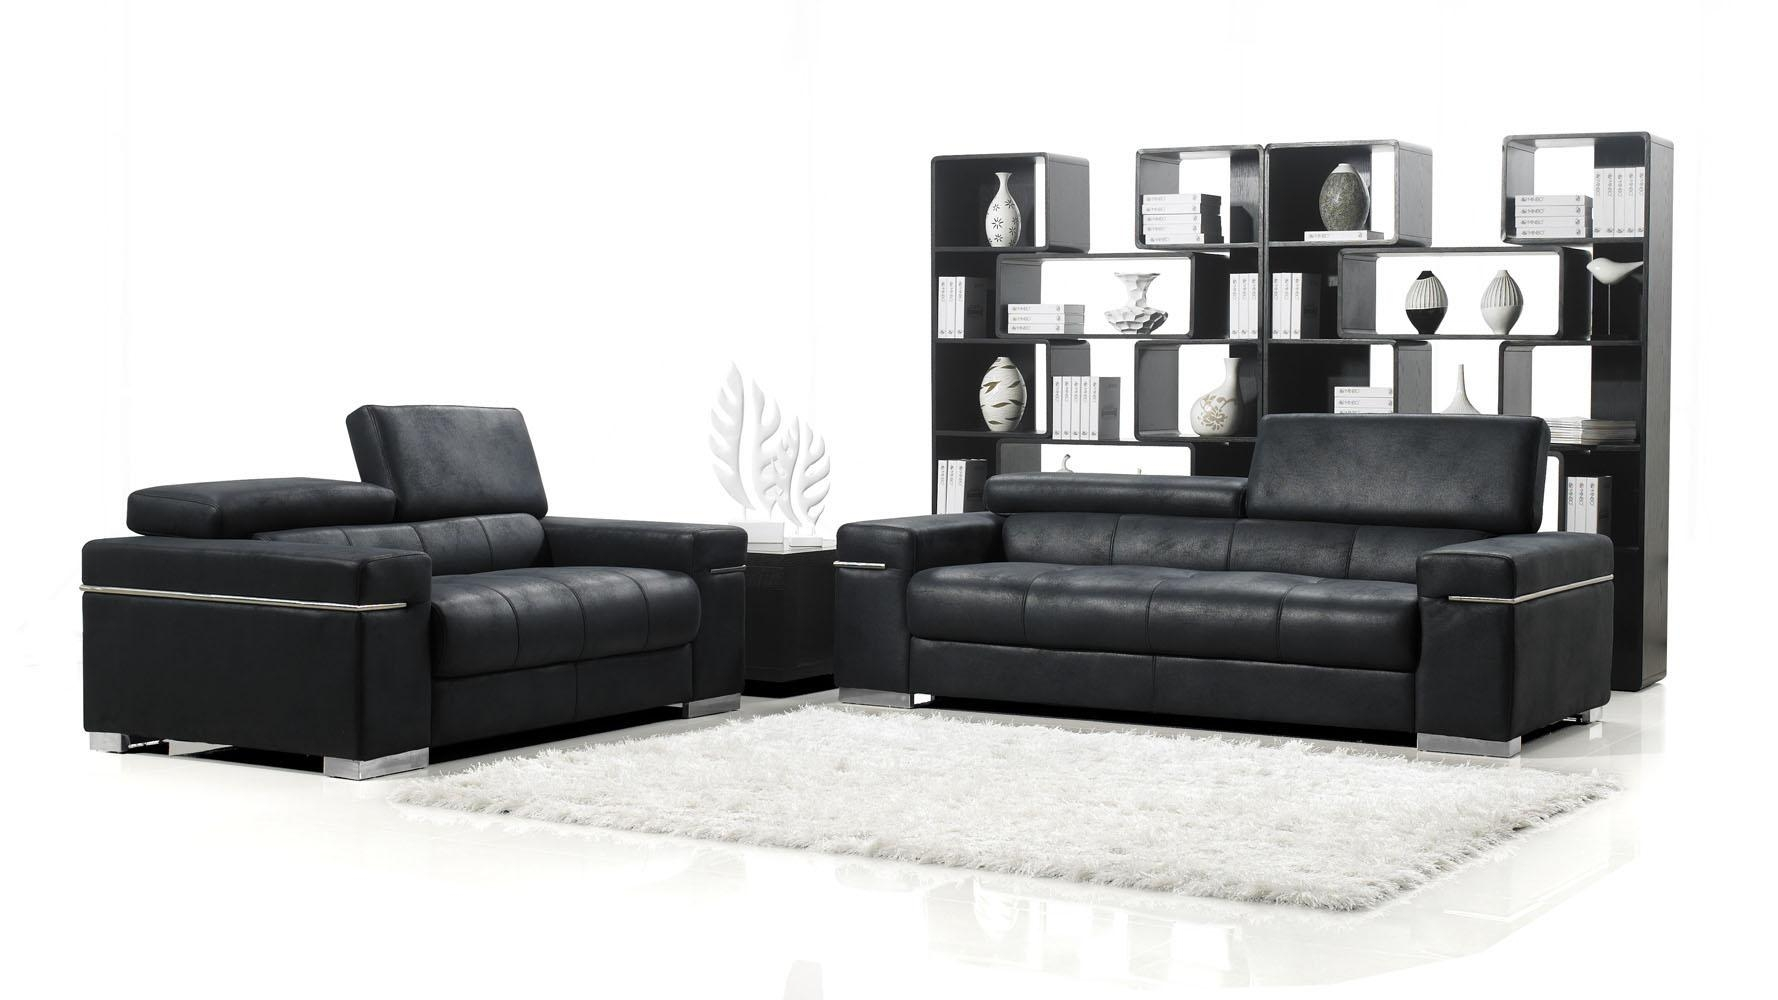 Products In Sofas | Sofa Sets, Seating, Living On Zuri Furniture In White Modern Sofas (View 18 of 20)